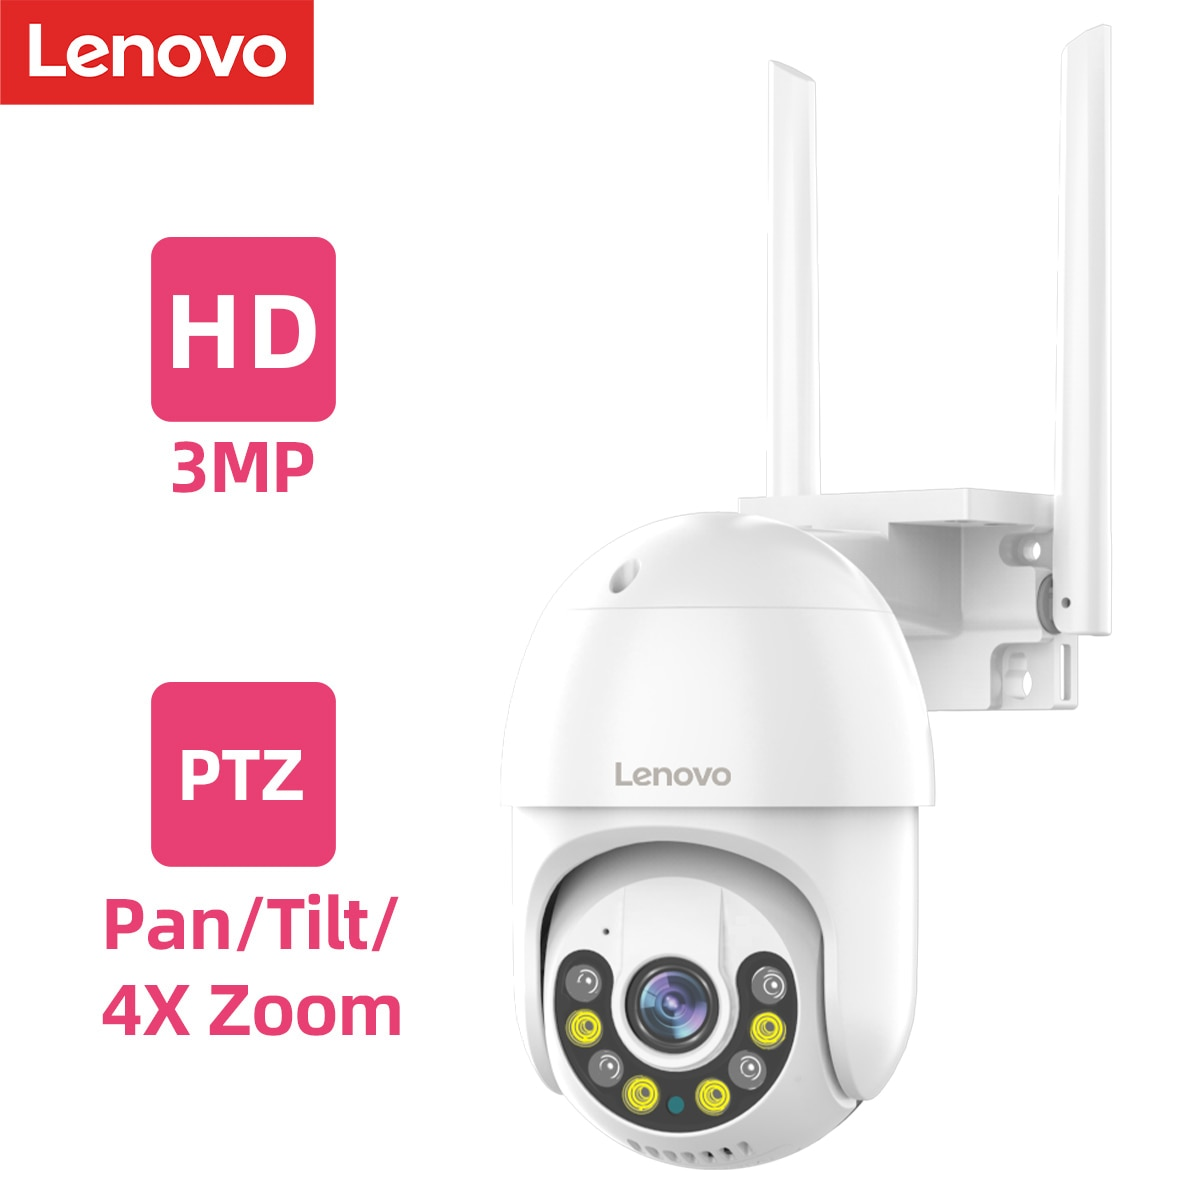 Lenovo 3MP PTZ WIFI IP Camera Outdoor 4X Digital Zoom Night Full Color Wireless P2P Security CCTV Camera Two Way Speak Audio